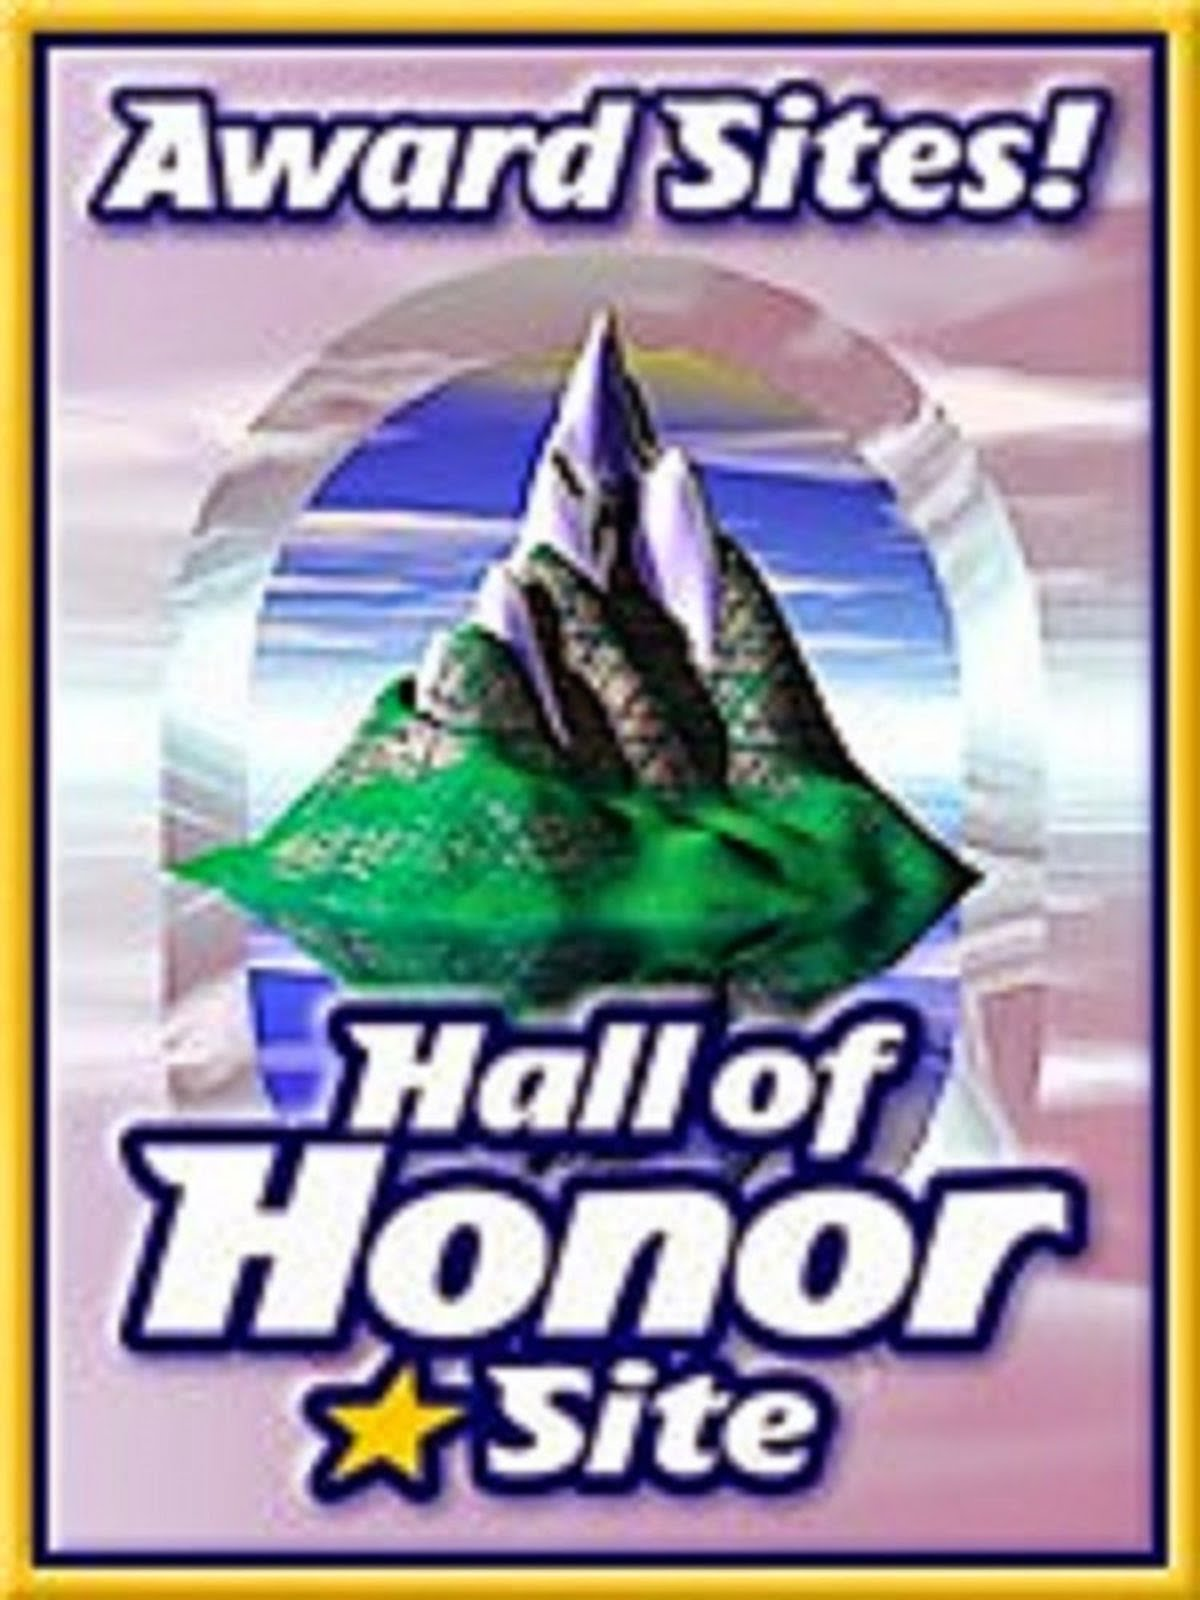 HALL OF HONOR - WEB AWARD